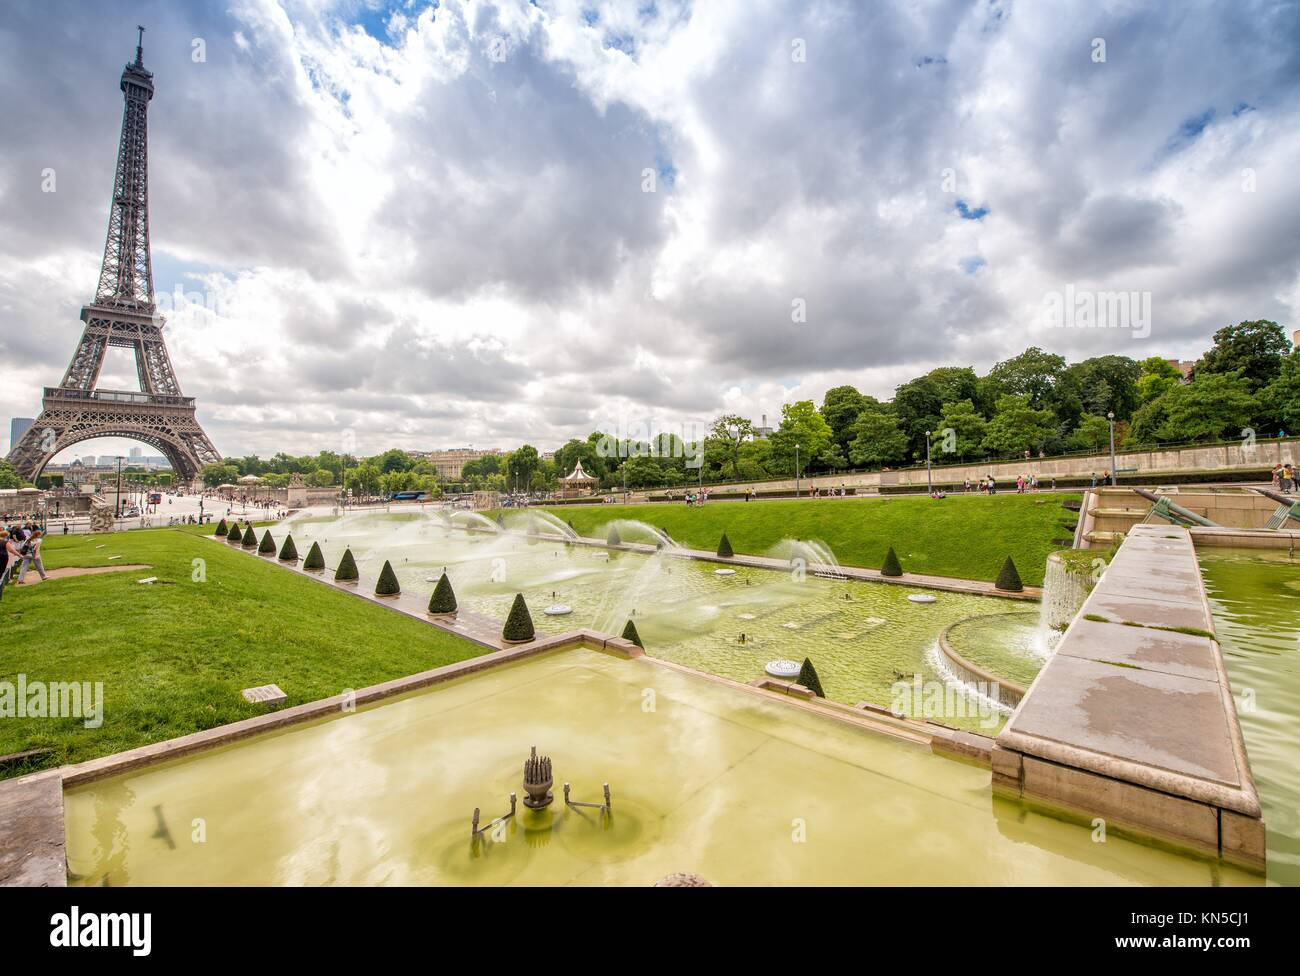 The Eiffel Tower on a beautiful summer day as seen from Trocadero Gardens. - Stock Image